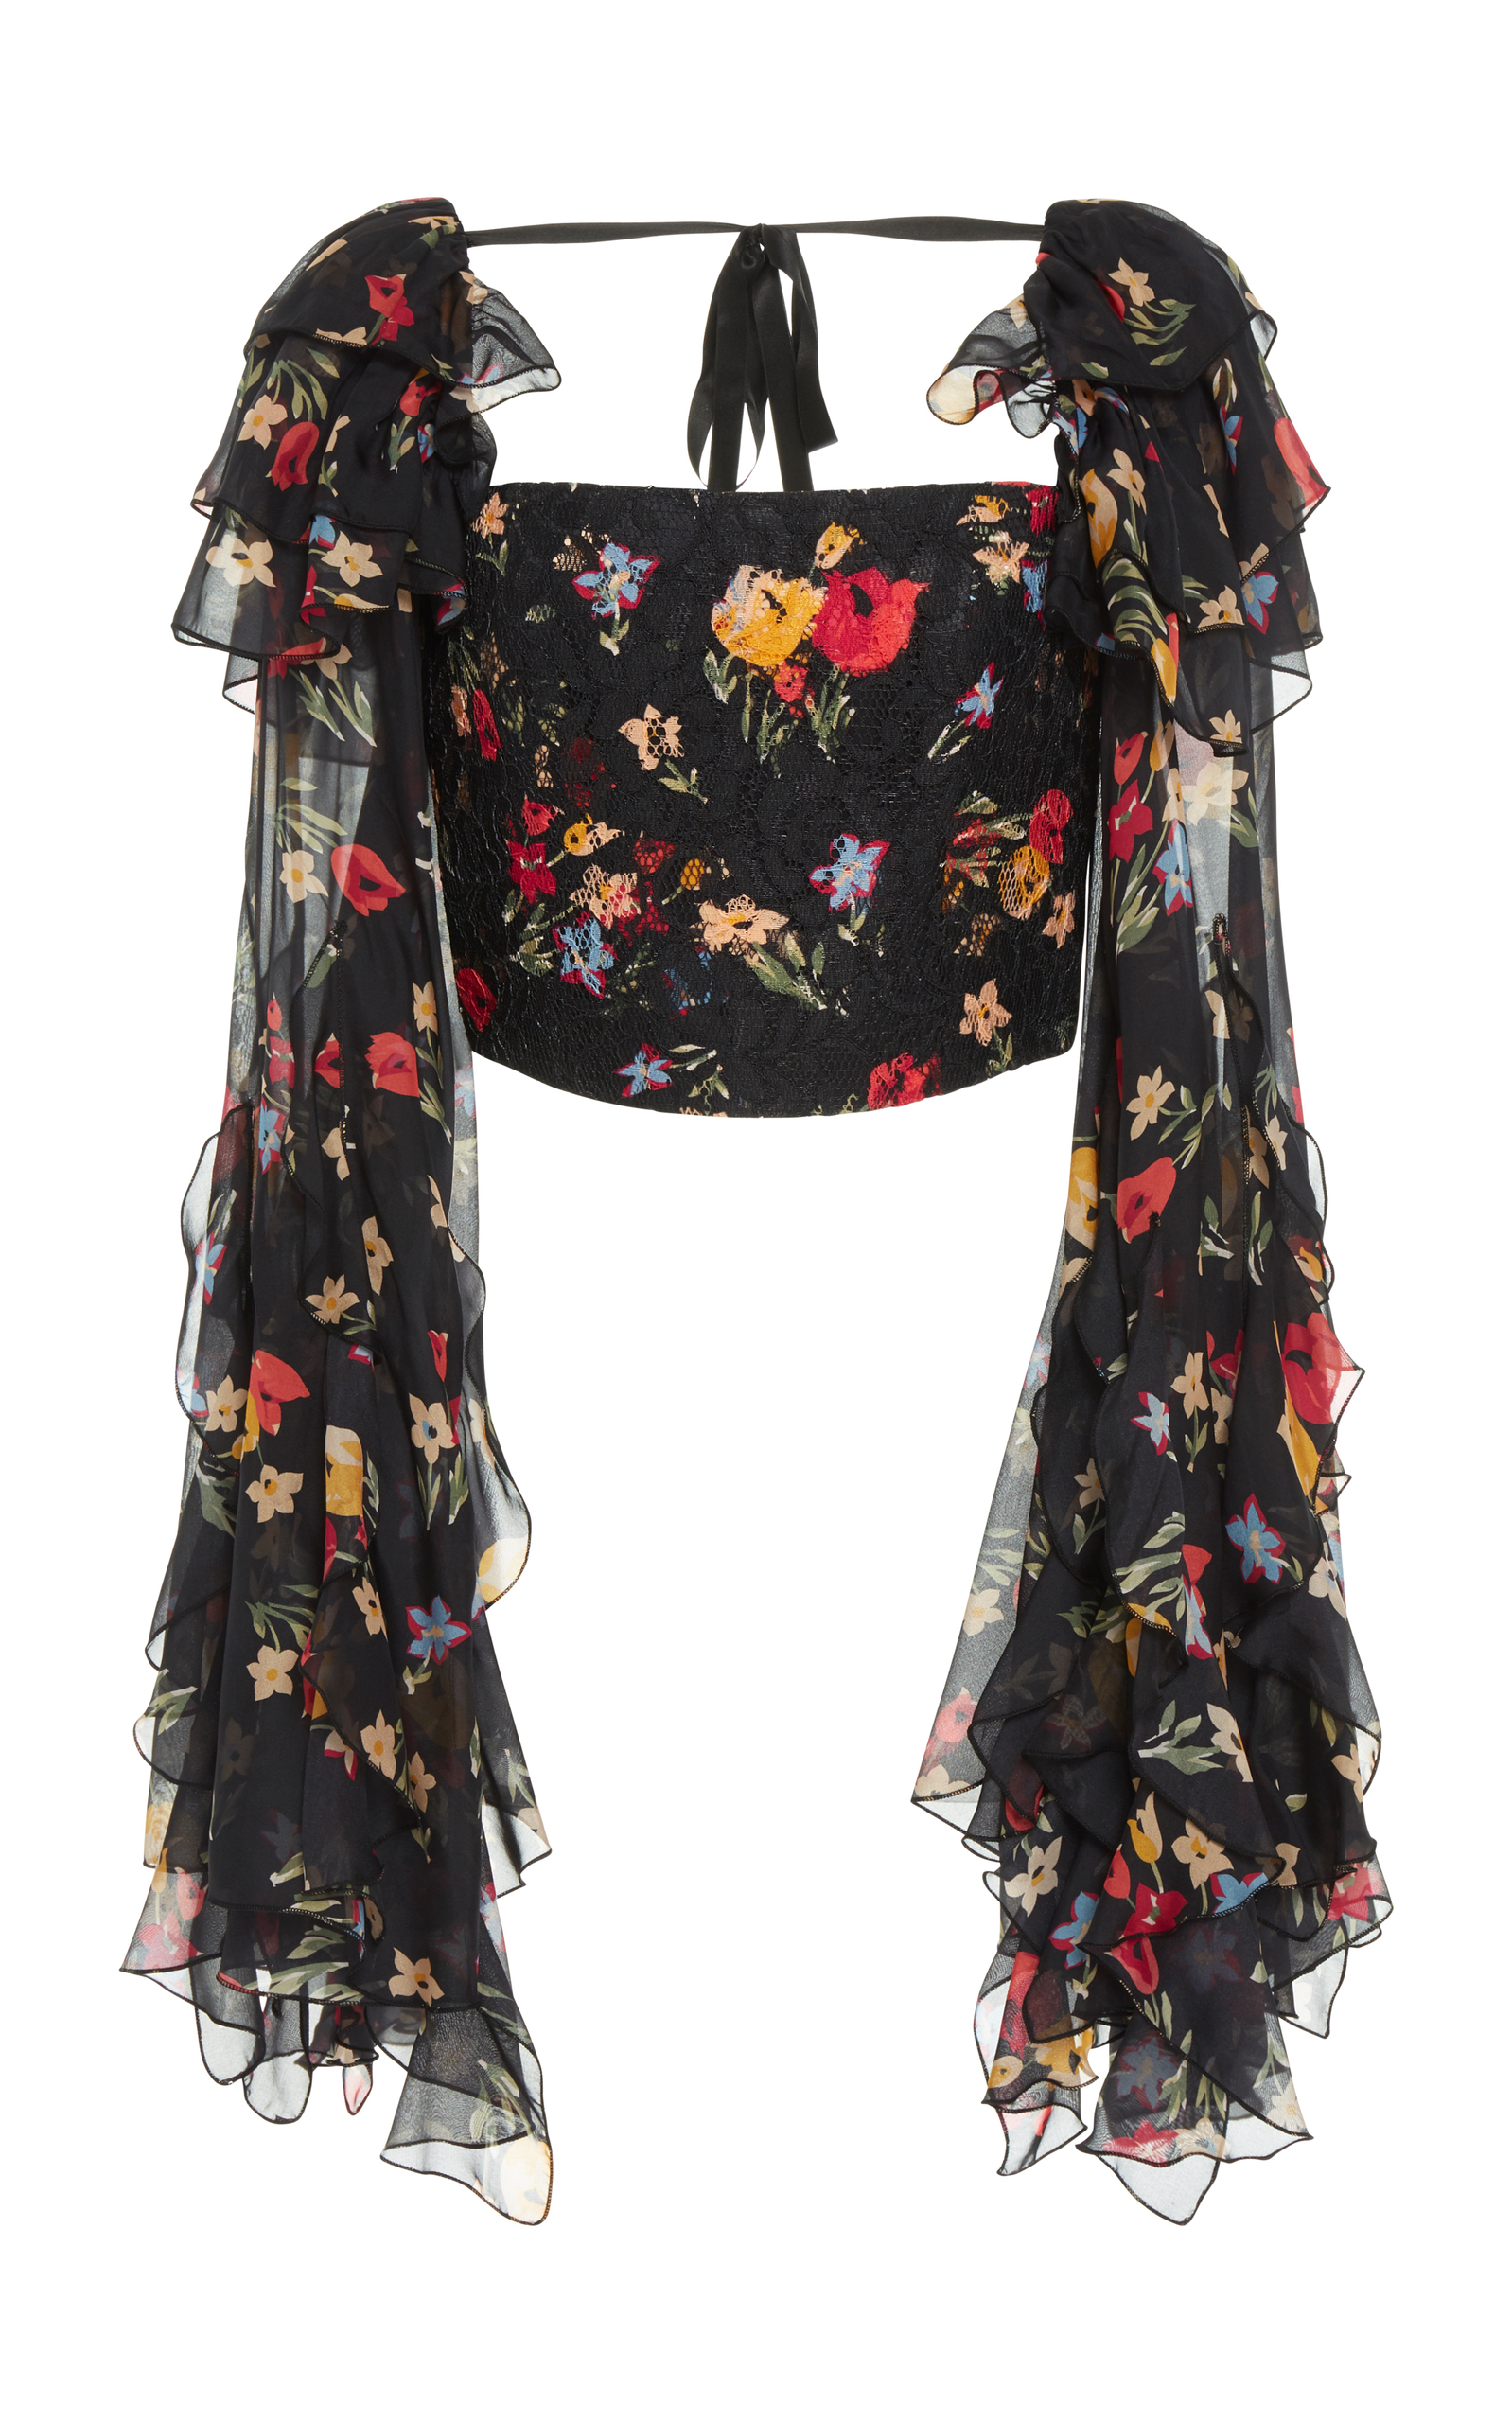 Floral Printed Silk Satin Cropped Blouse Rodarte Shop Offer 100% Authentic Online Clearance High Quality QRsOsau